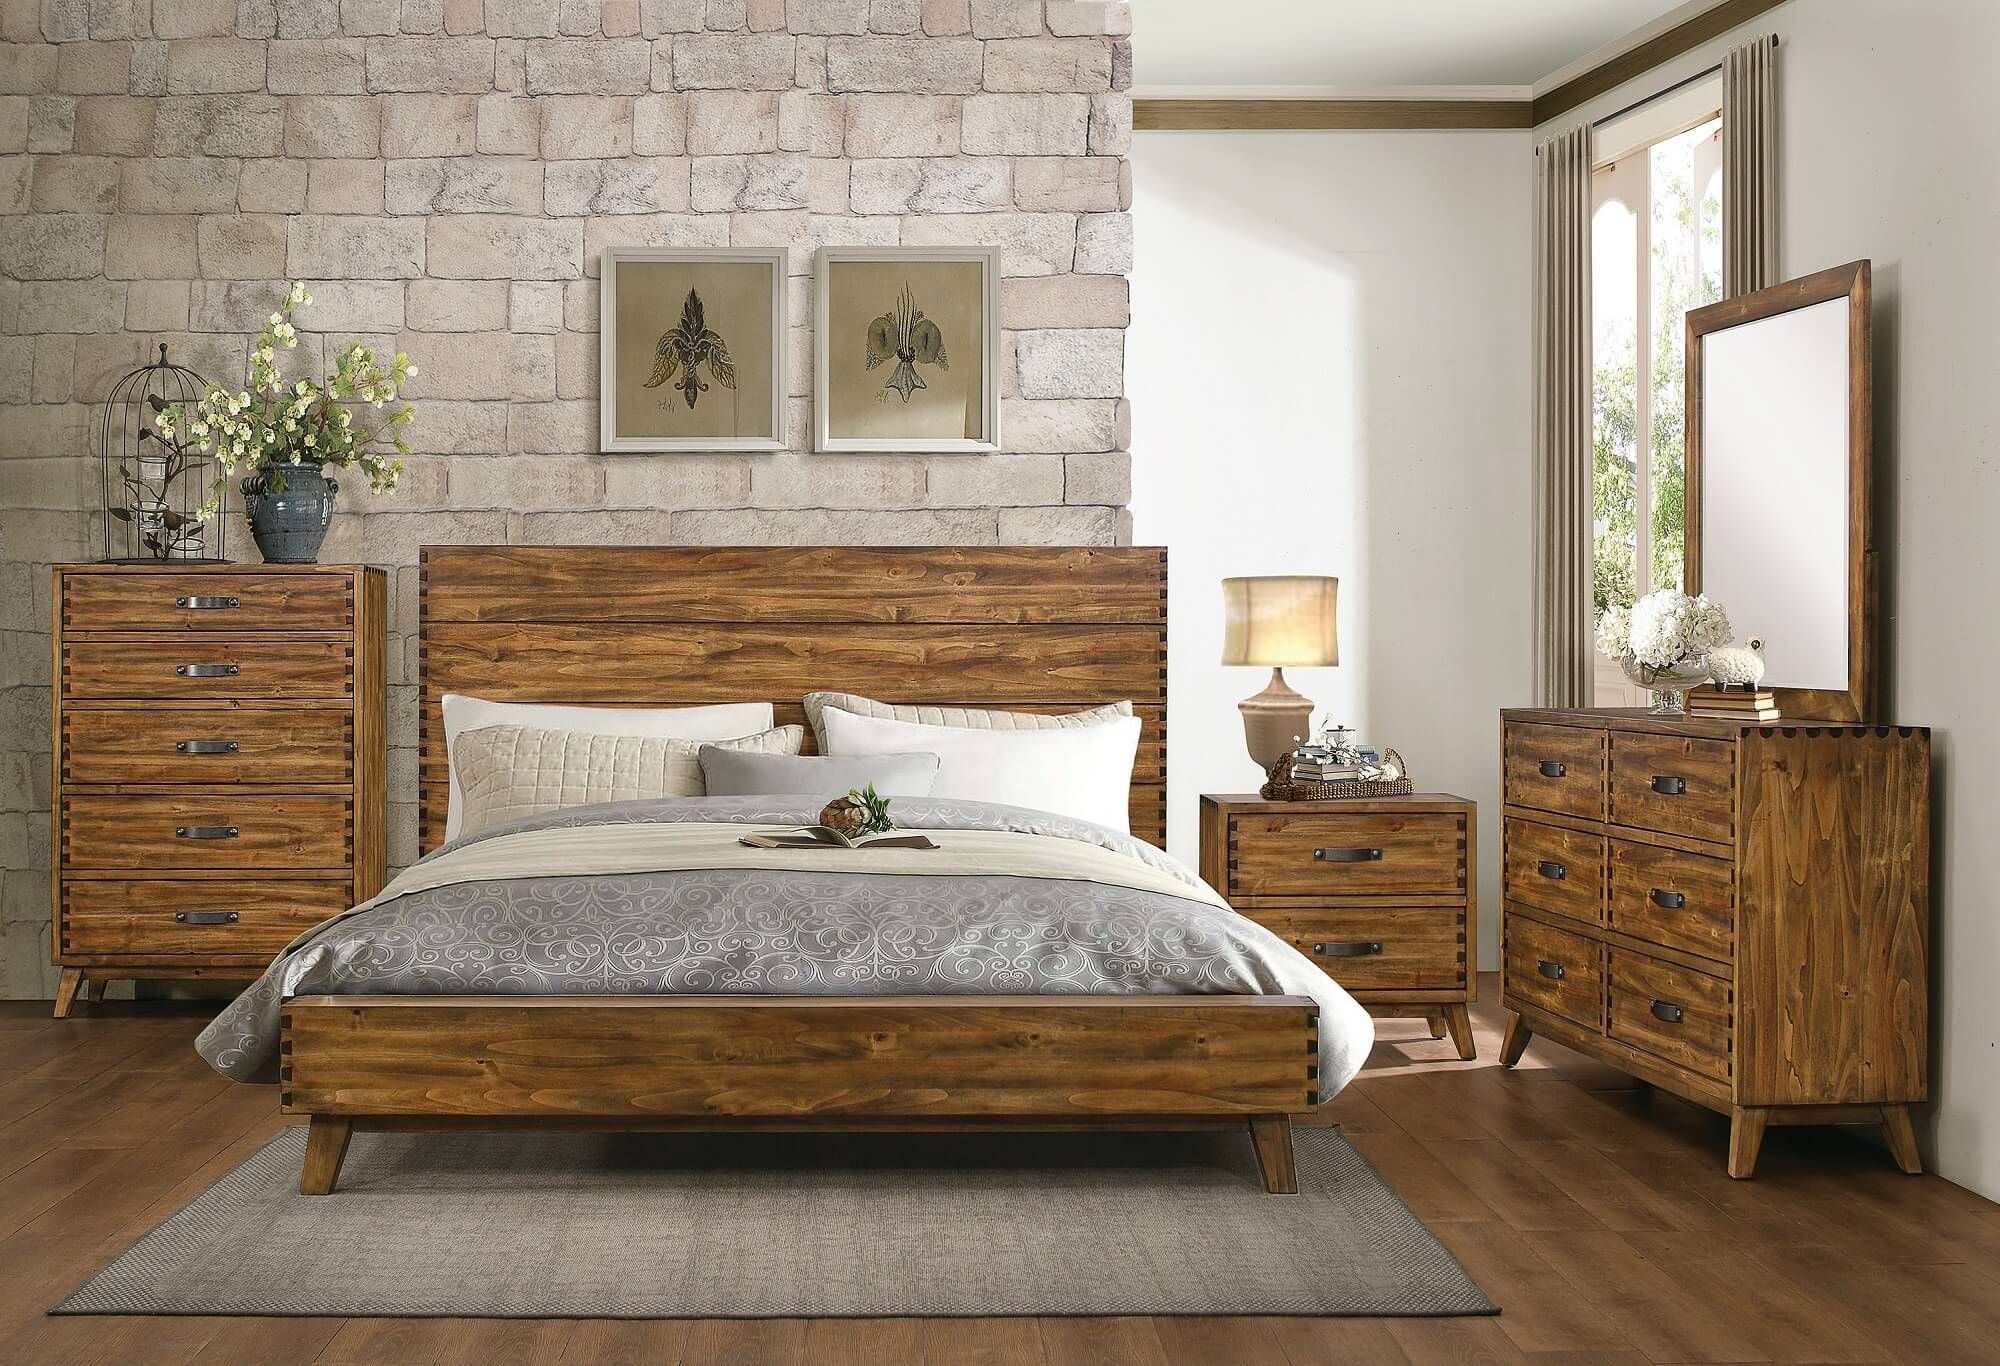 Sorrel Rustic Solid Wood 5 Drawer Chest By Homelegance Usa Furniture Online Rustic Bedroom Furniture Sets Wood Bedroom Sets Rustic Bedroom Furniture